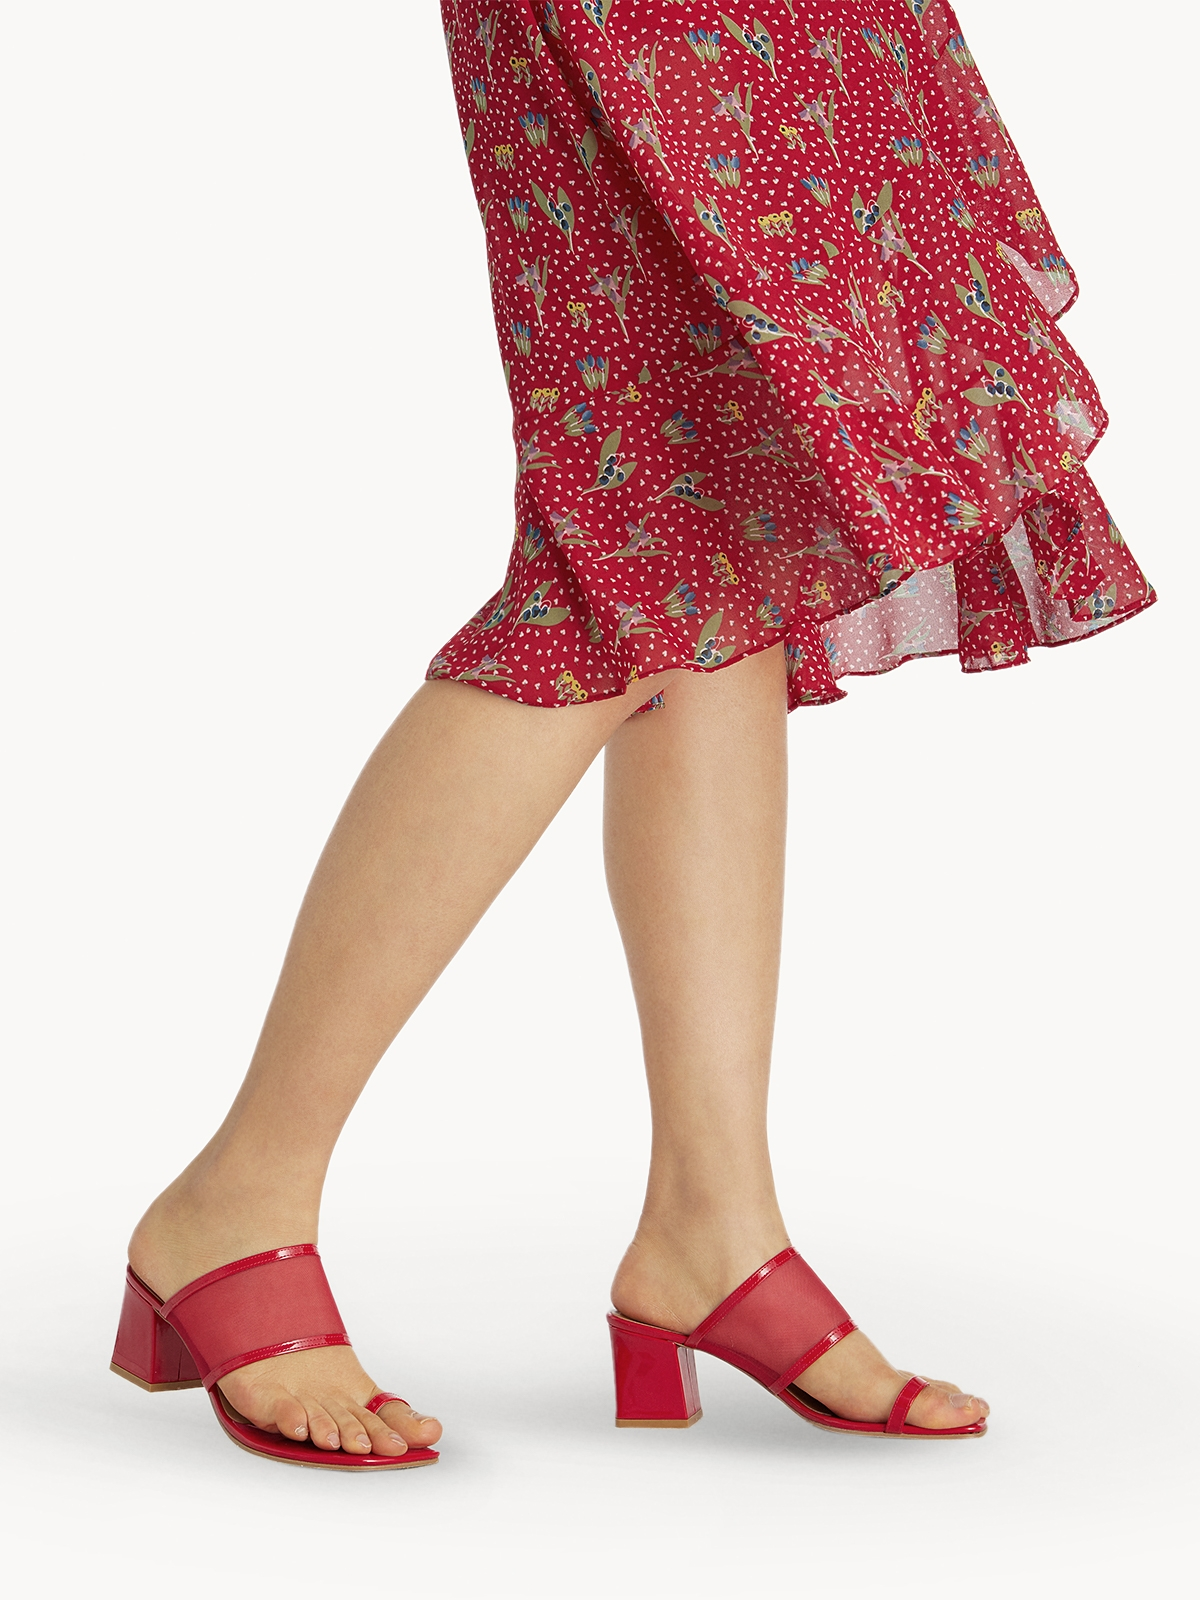 Prove Toe Ring Heeled Sandals Red